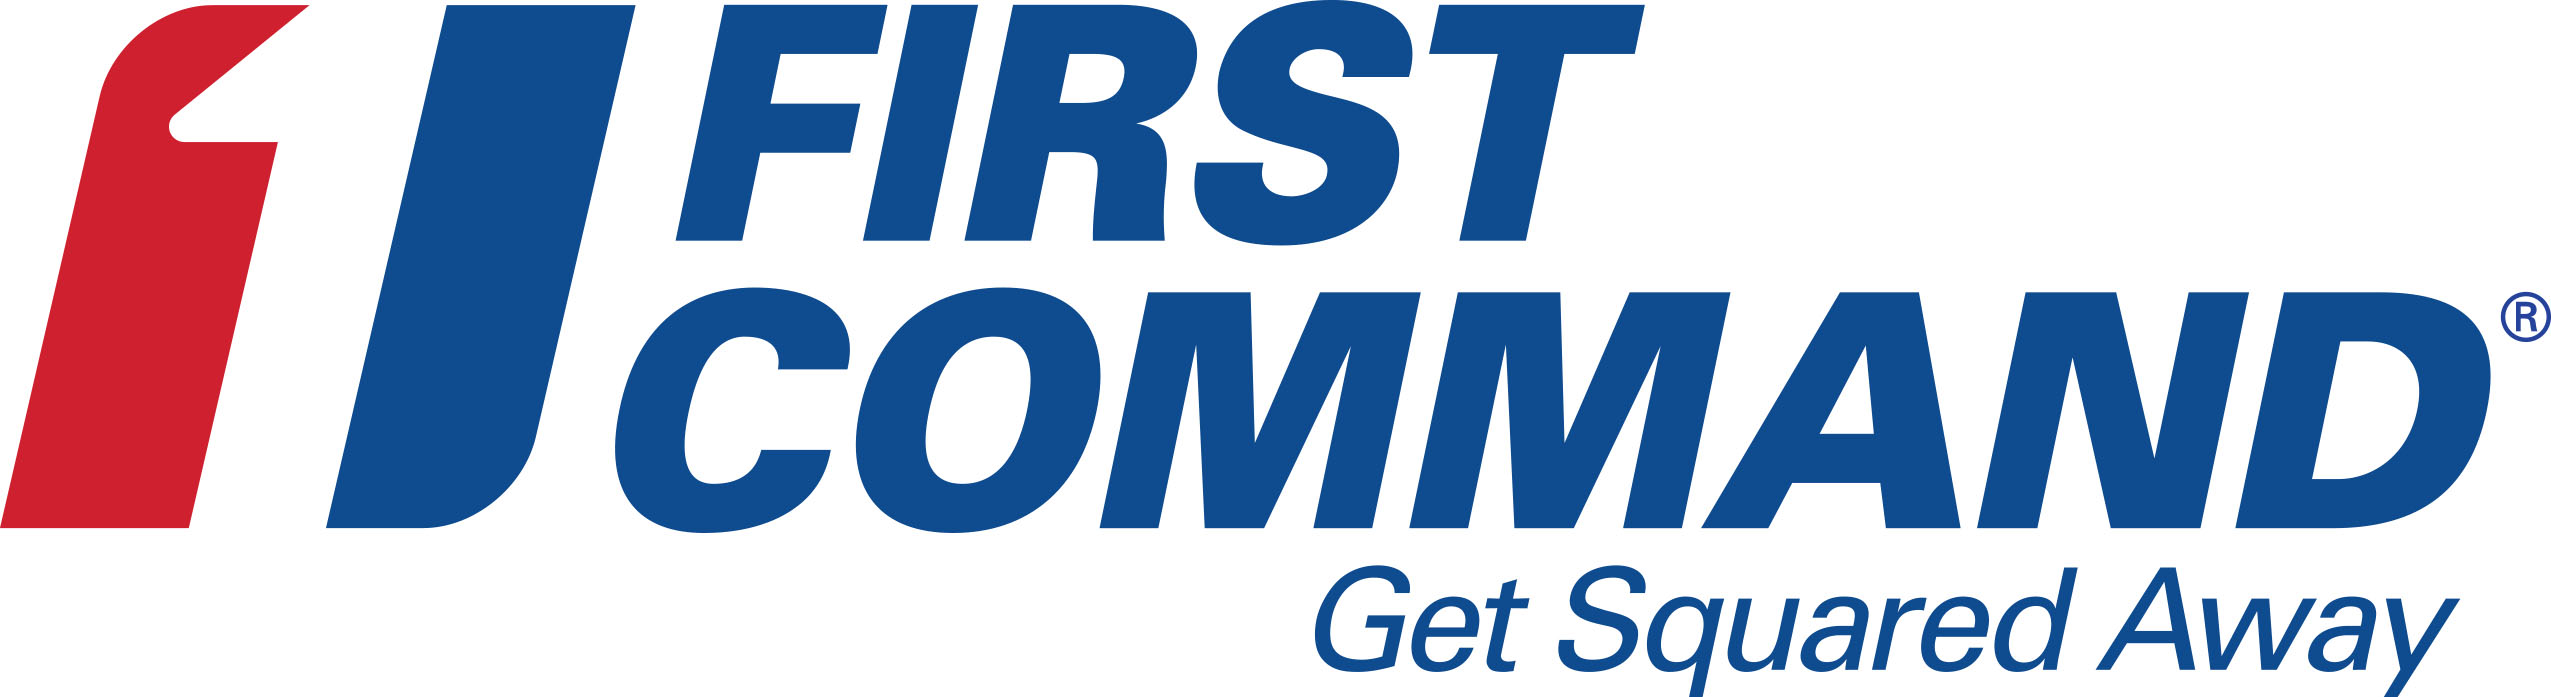 First command brokered investments clothing property investment ideas uk national lottery